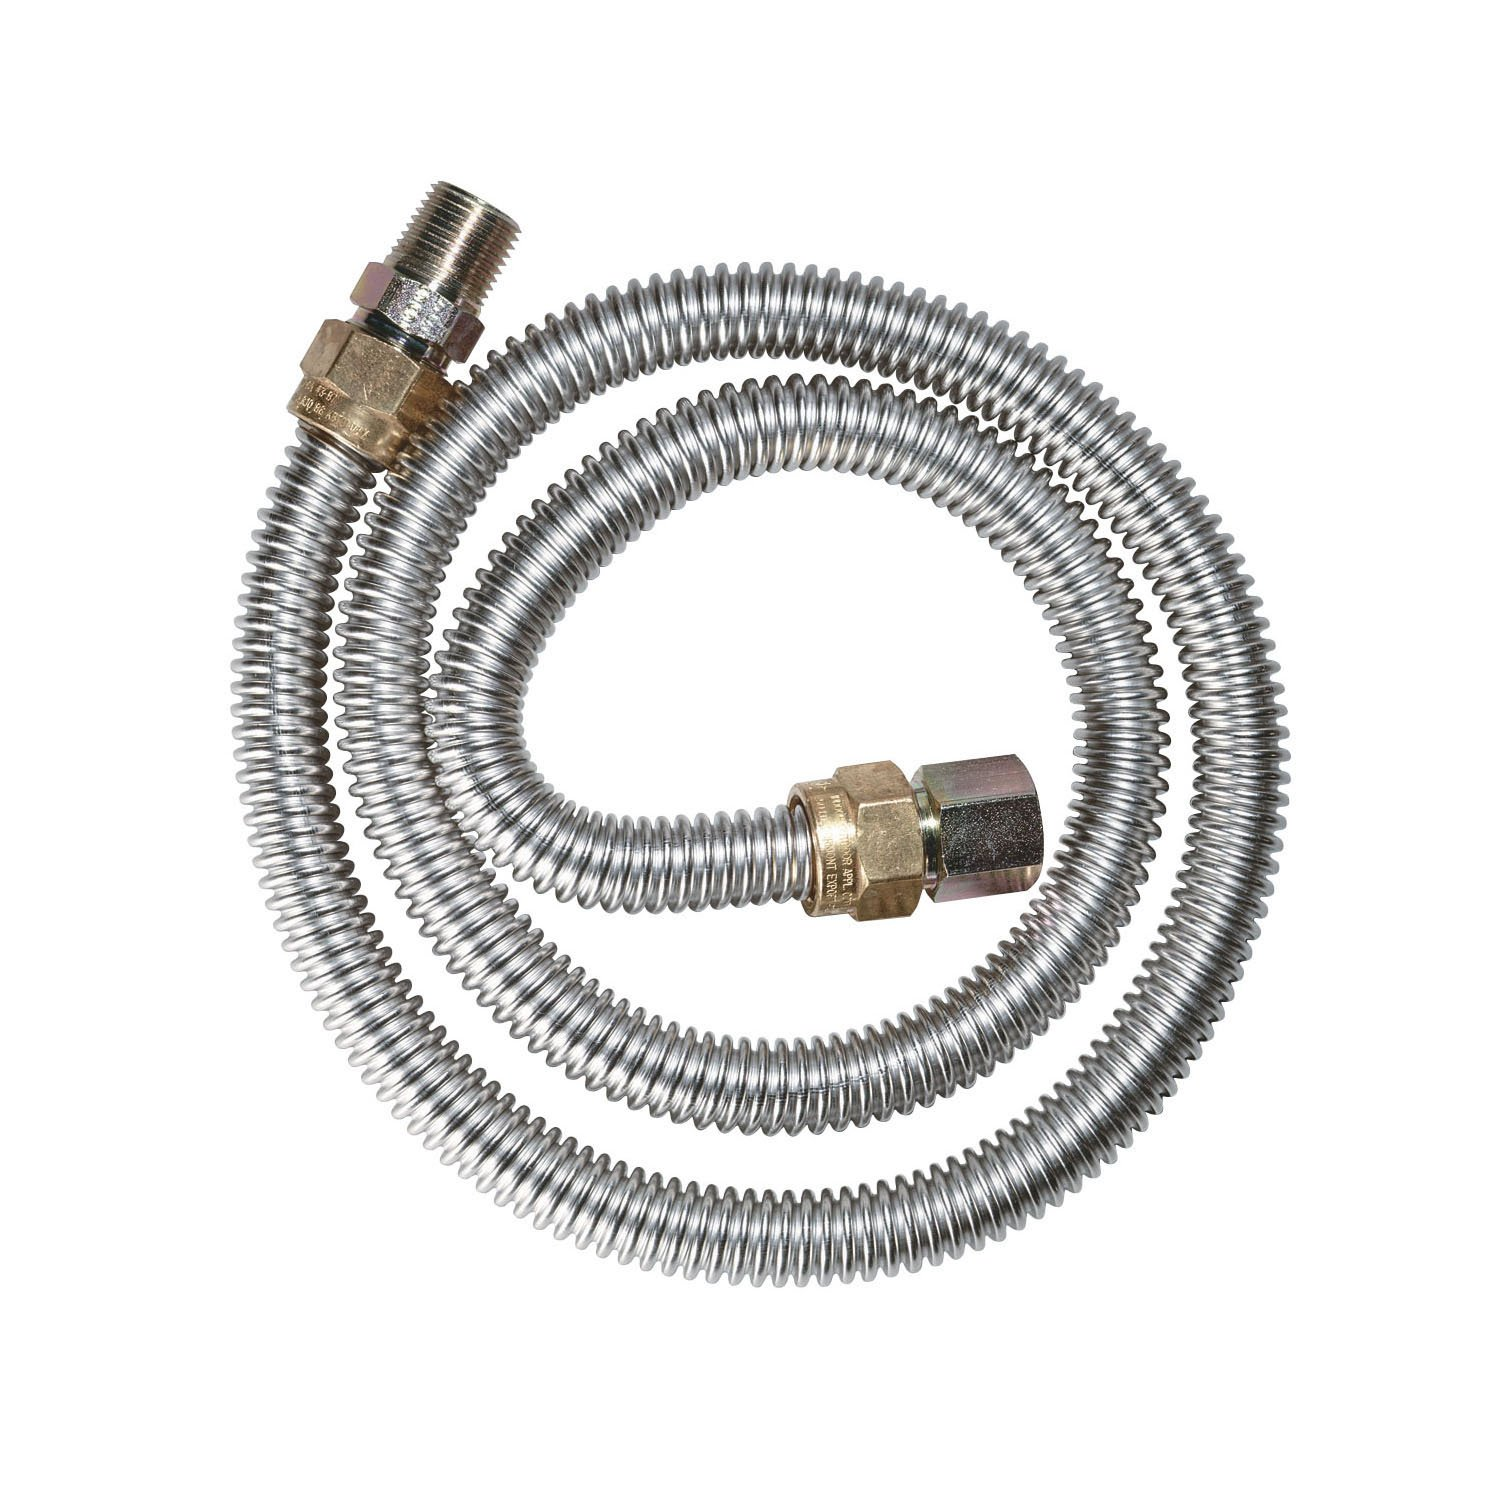 Dormont 20-3132-36B 36 in. Long Outlet Diameter Male x 1/2 in. Female Gas Appliance Connector, 1 pack by Dormont